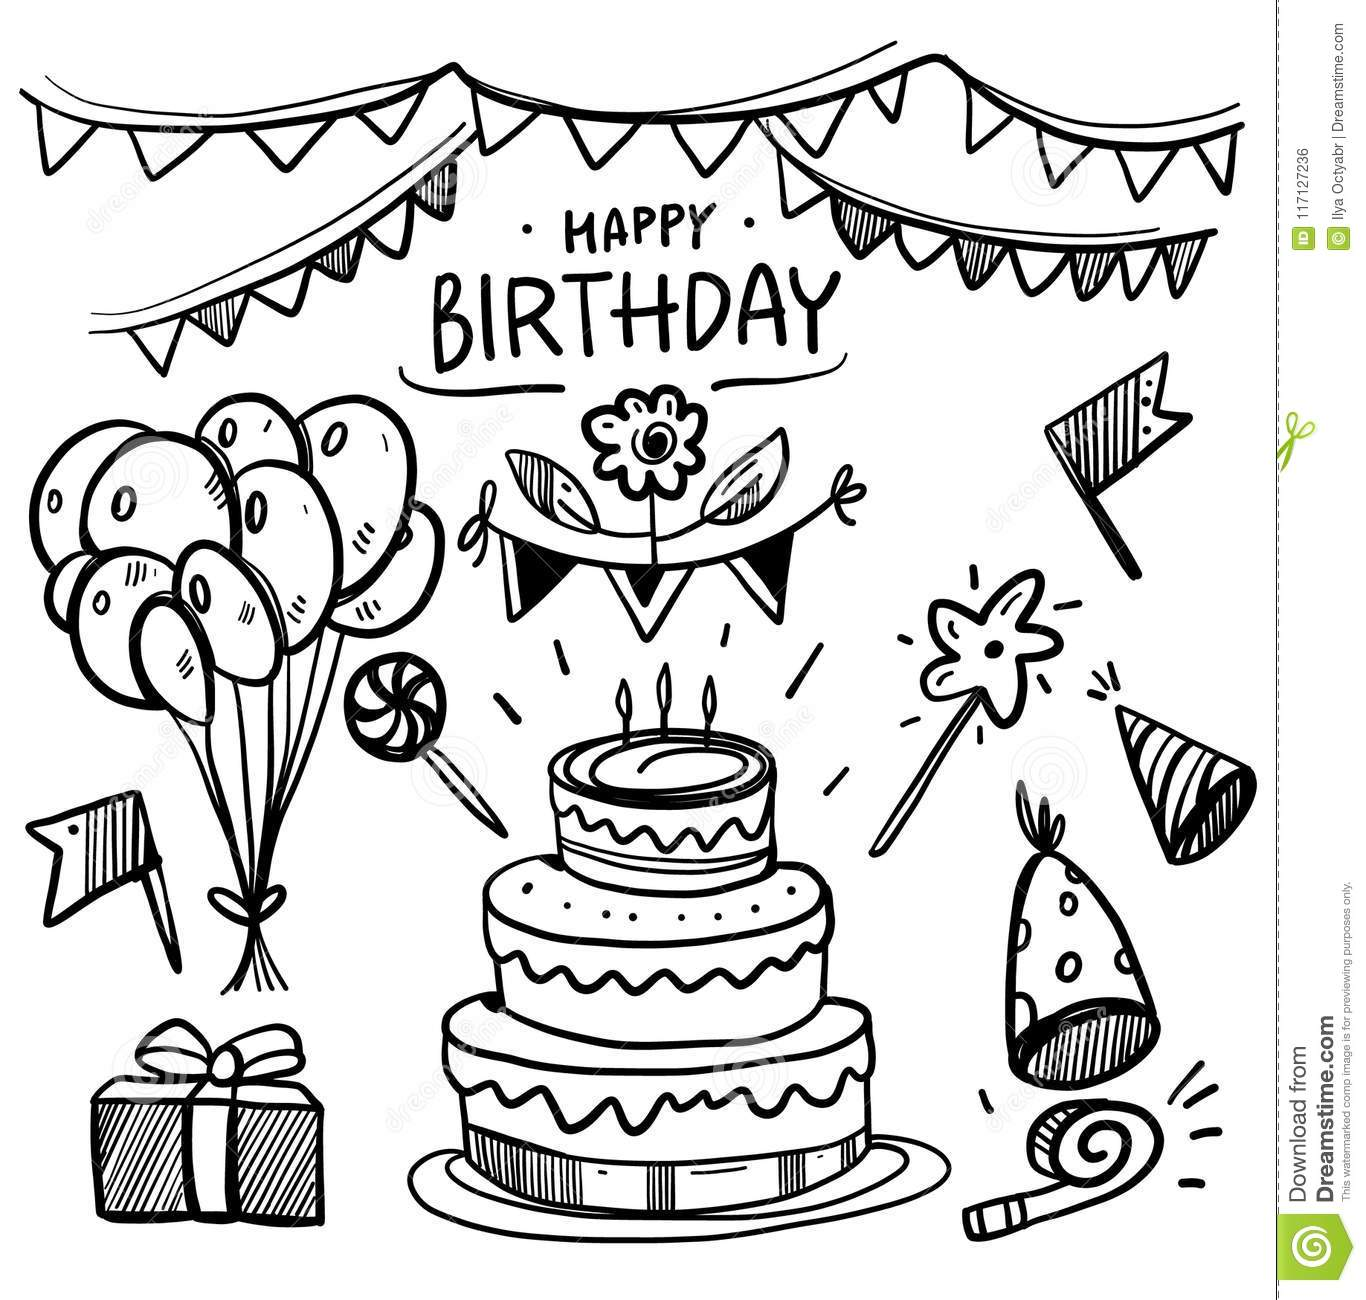 Doodle Birthday party vector set collection.